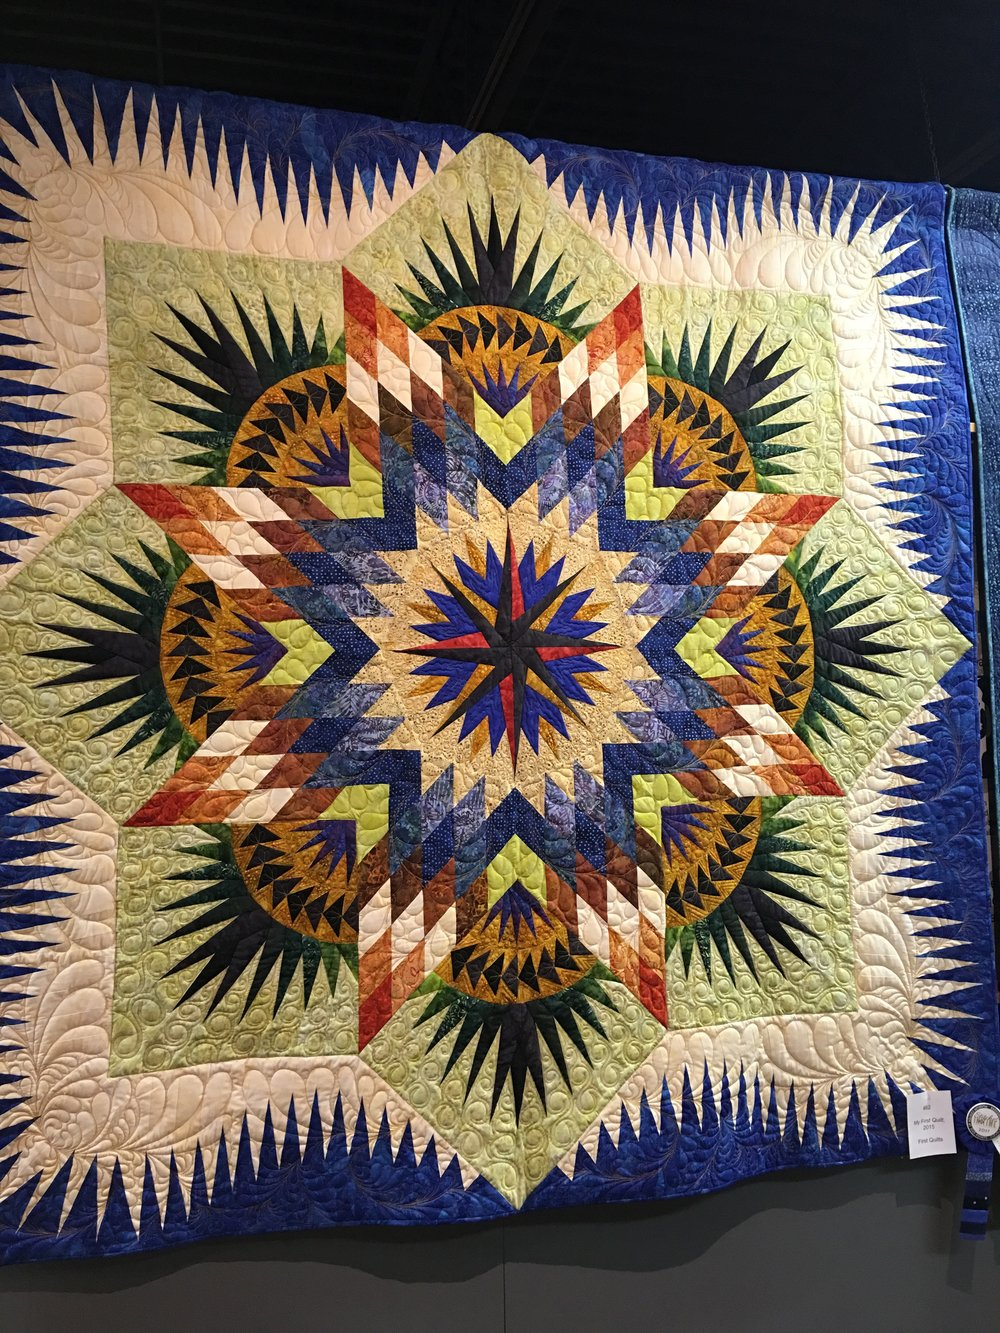 1st Place First Quilts: My First Quilt entered by David Surette